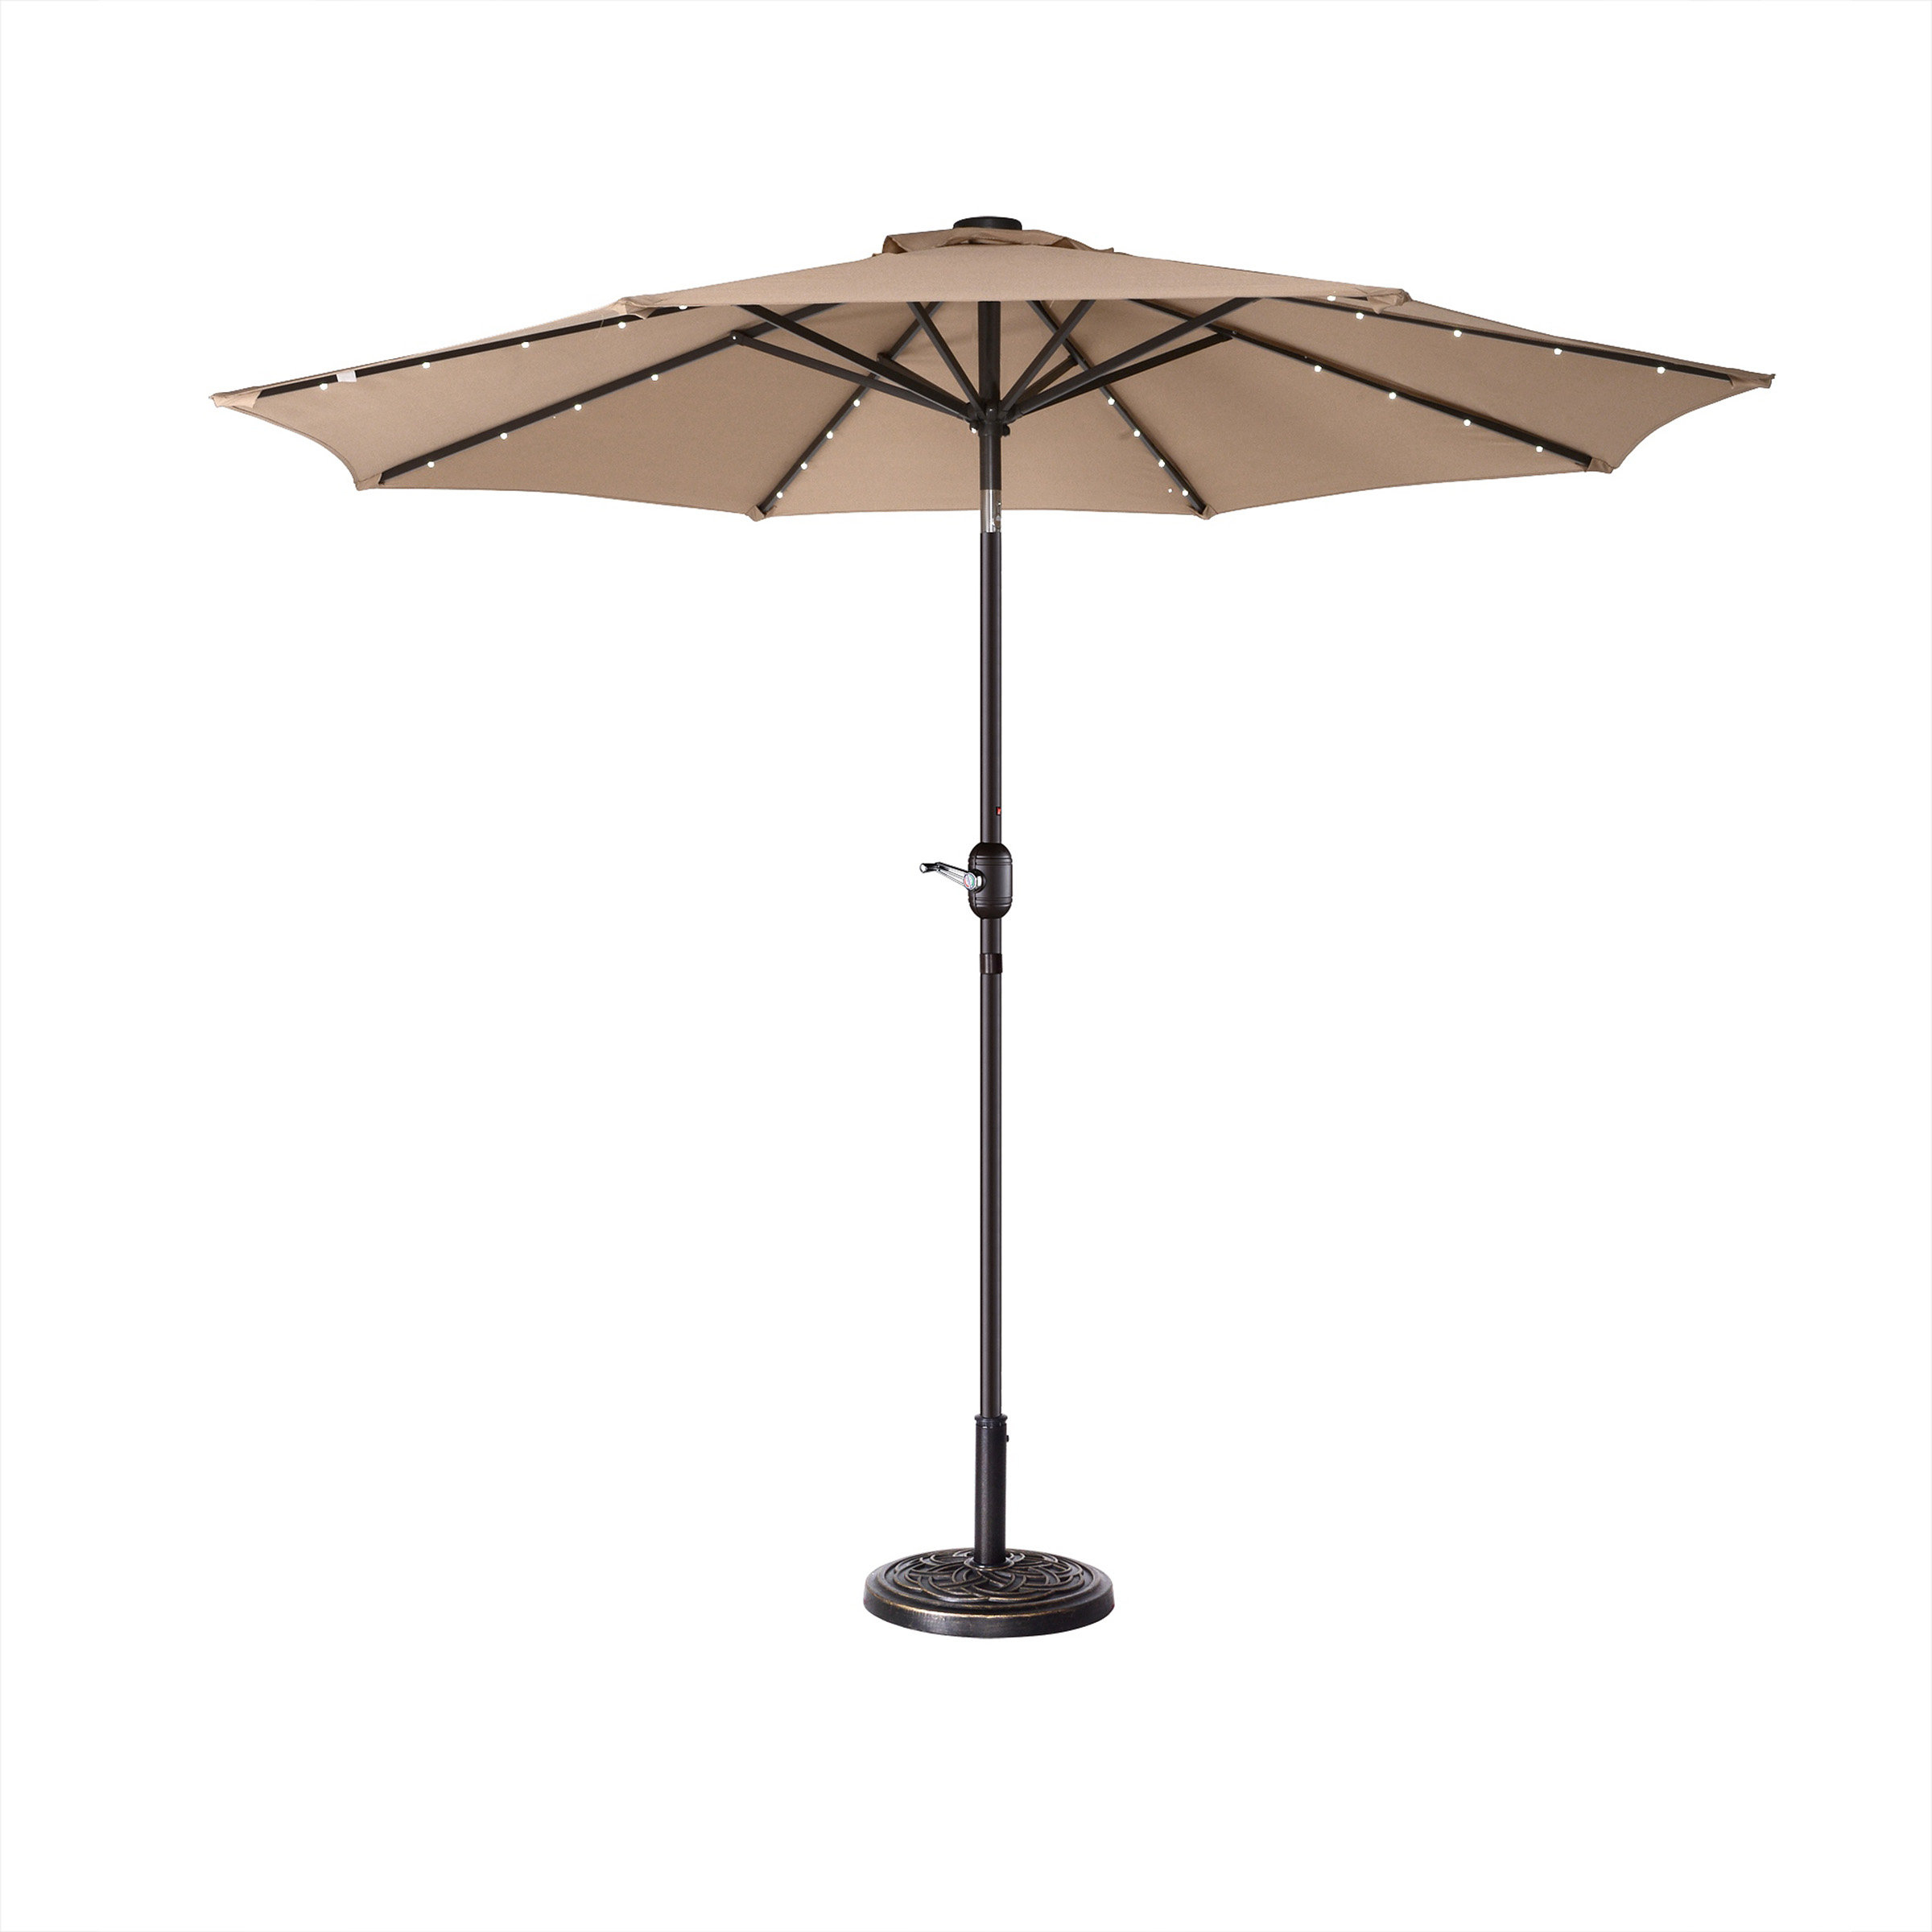 Popular Hawkinge Market Umbrellas Intended For Coggeshall Led Lighted 9' Market Umbrella (View 14 of 20)